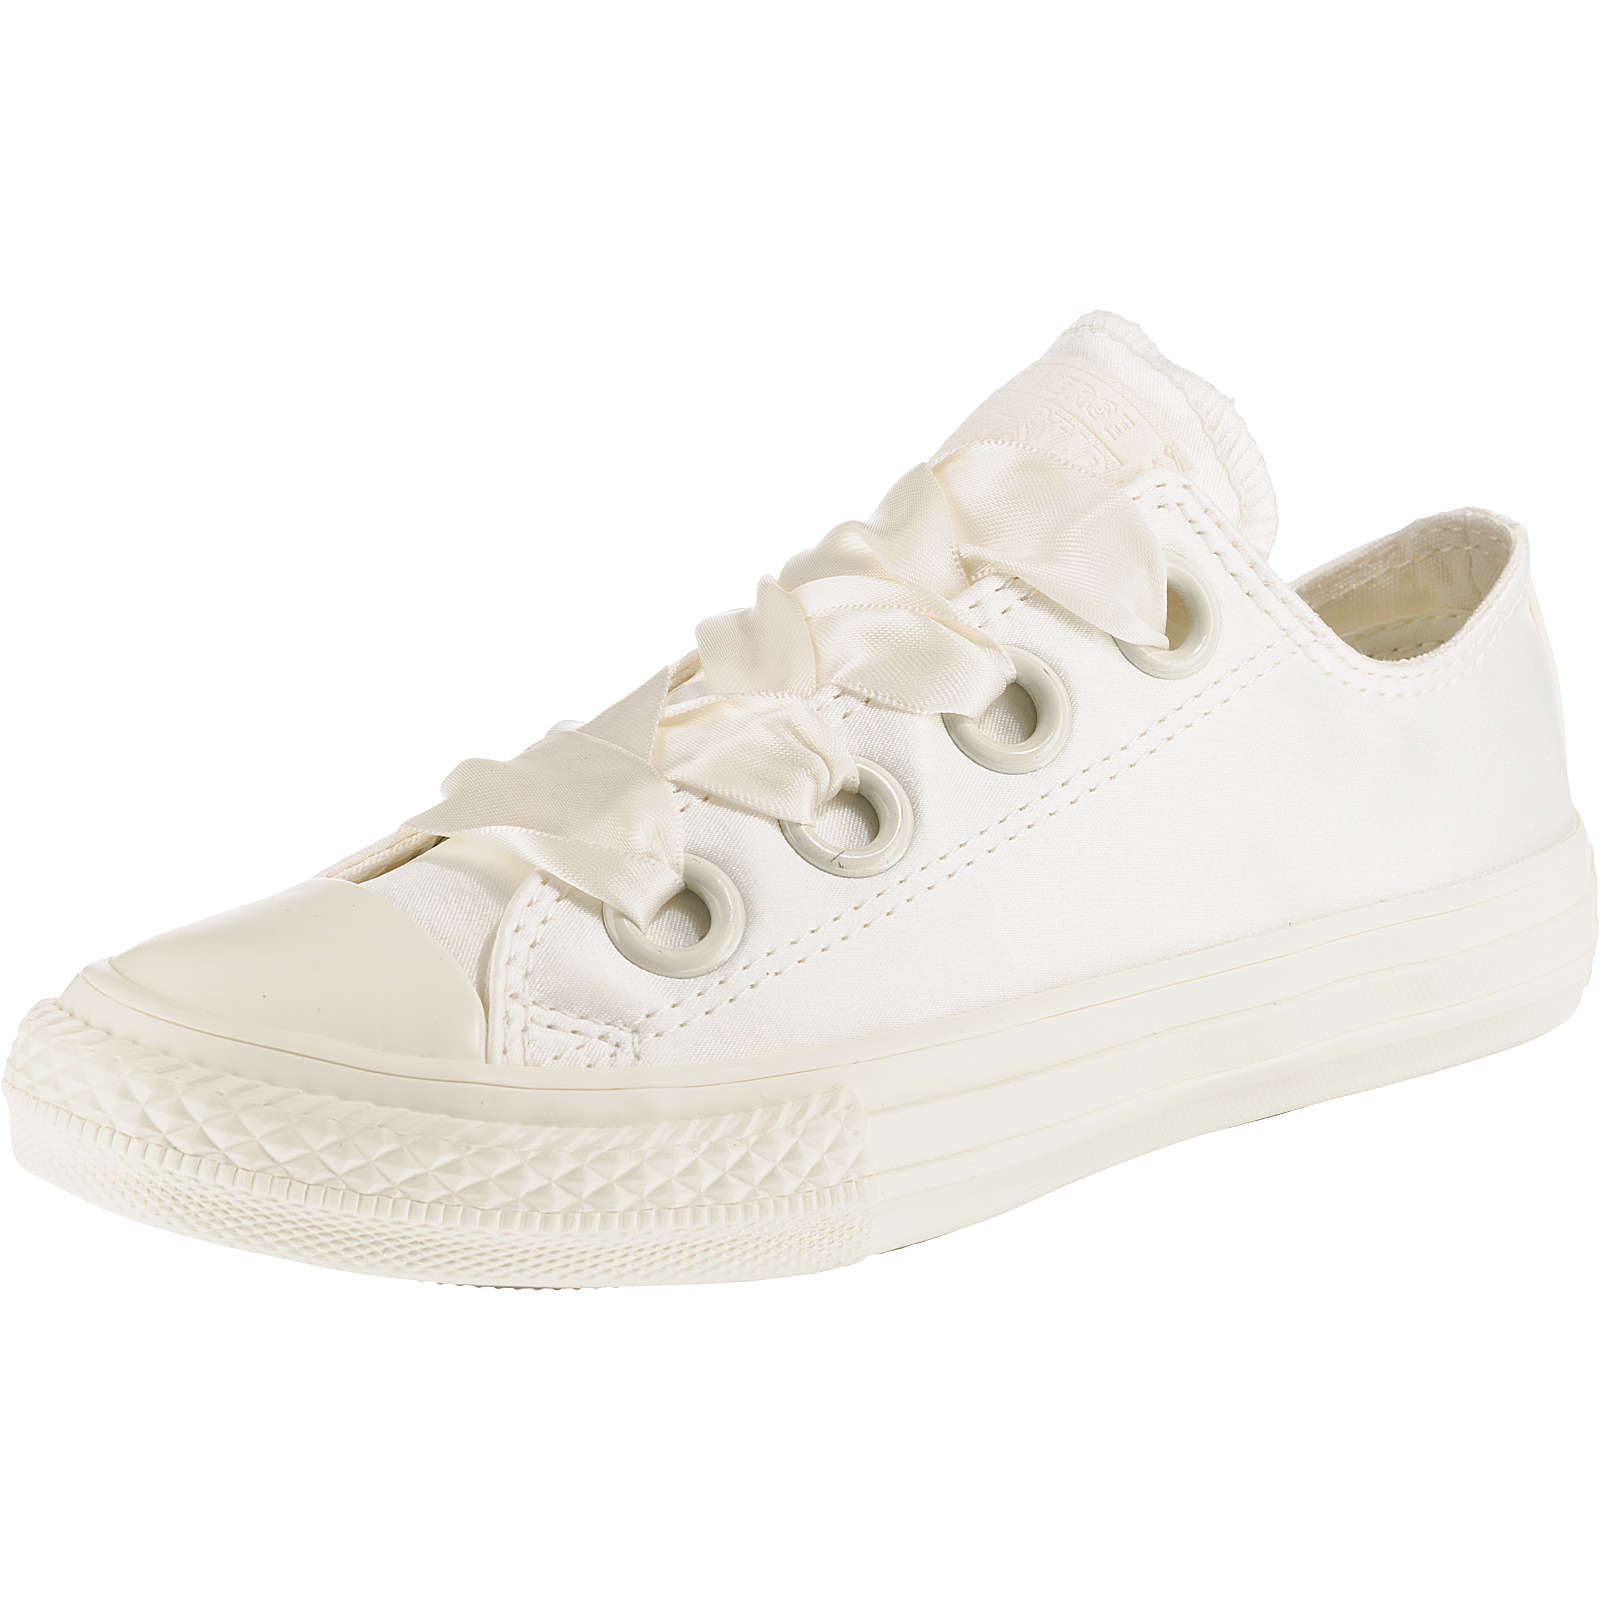 CONVERSE Kinder Sneakers Low Chuck Taylor All Star Big Eyelet weiß Mädchen Gr. 32